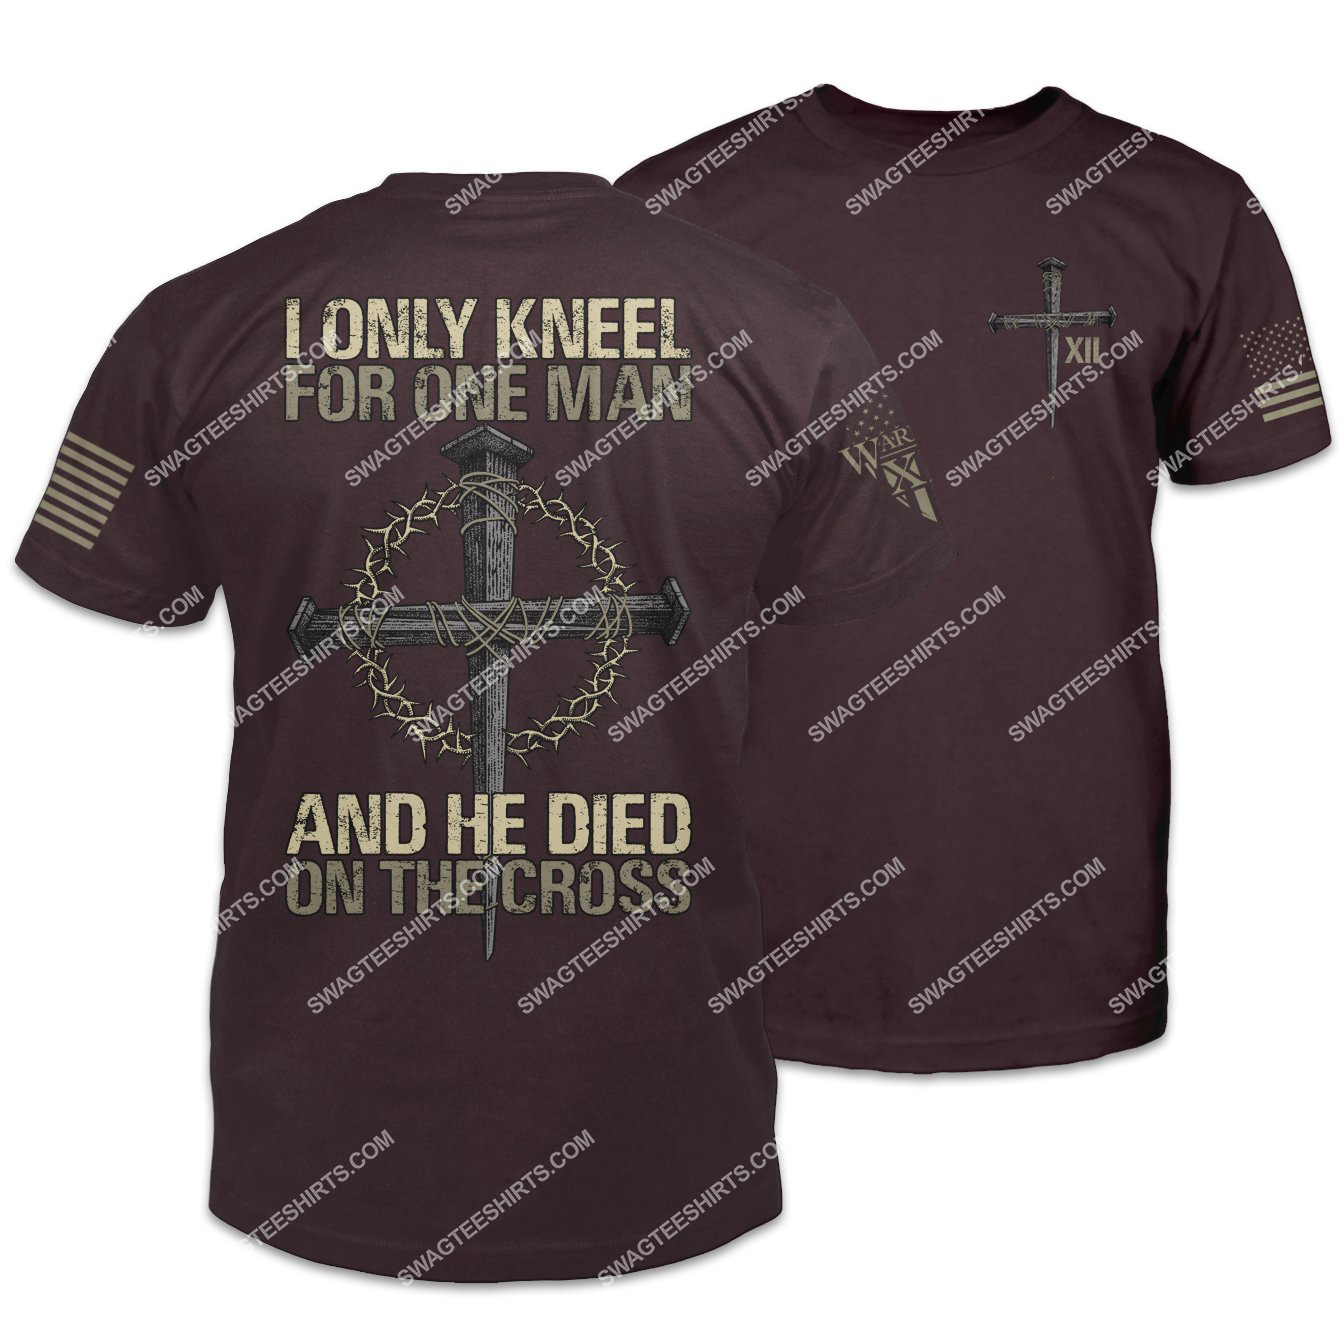 we only kneel for one man and he died on the cross shirt 1 - Copy